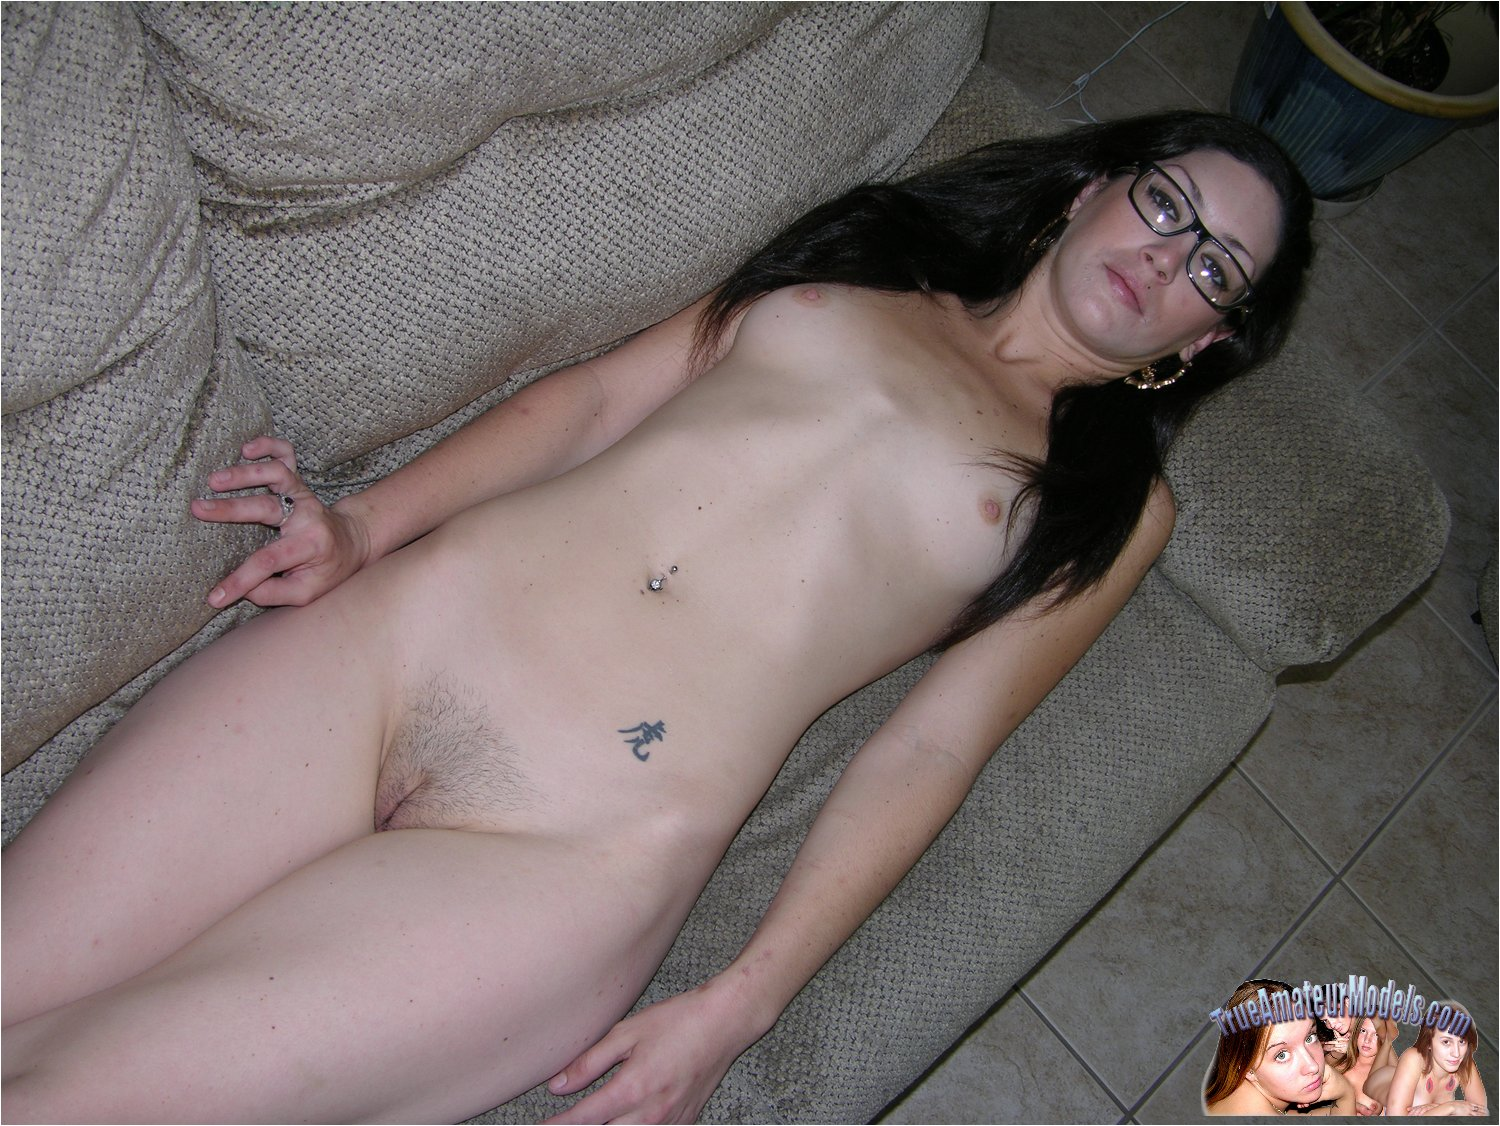 real nude pics of stepdaughter